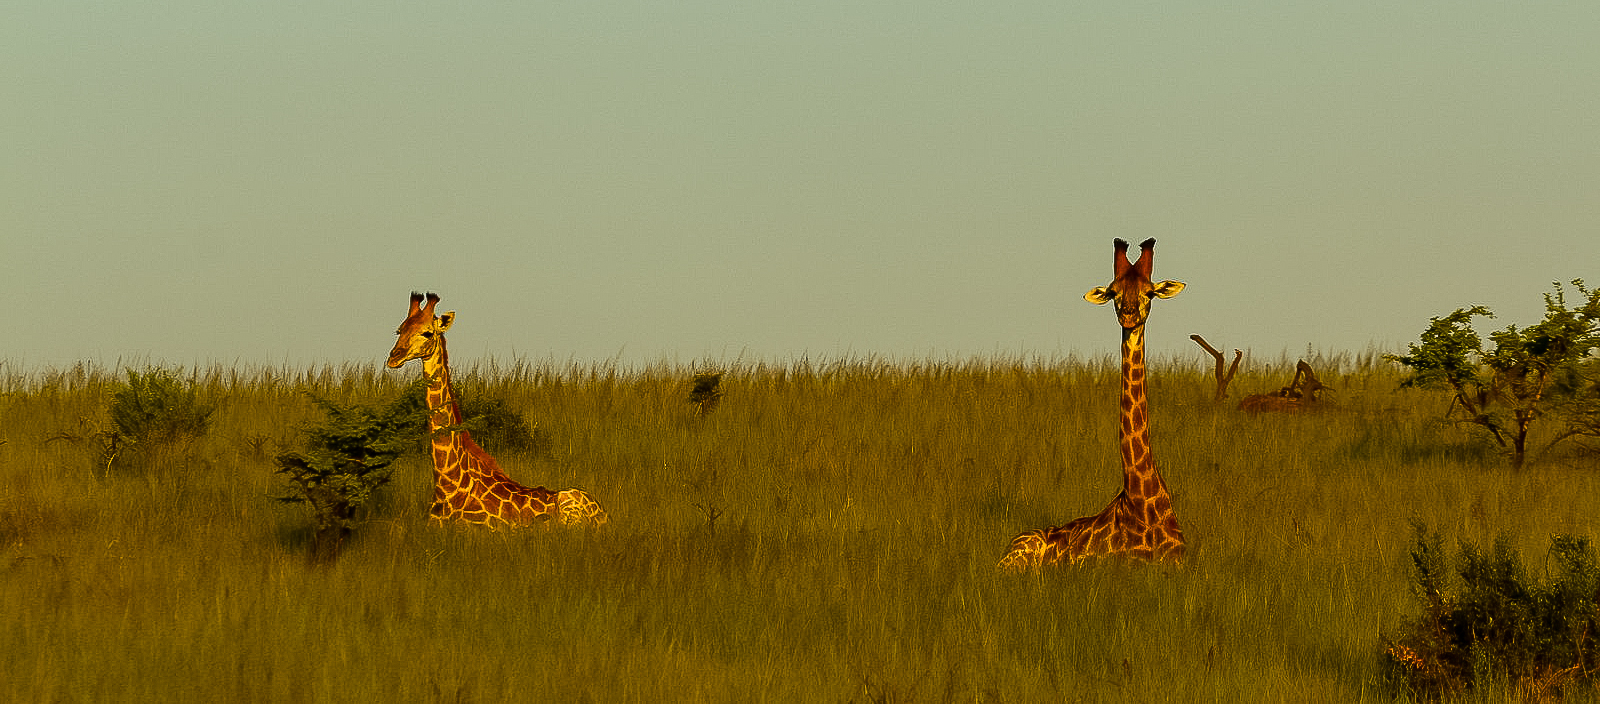 Ithala Game Reserve : Destinations of South Africa Blog Series